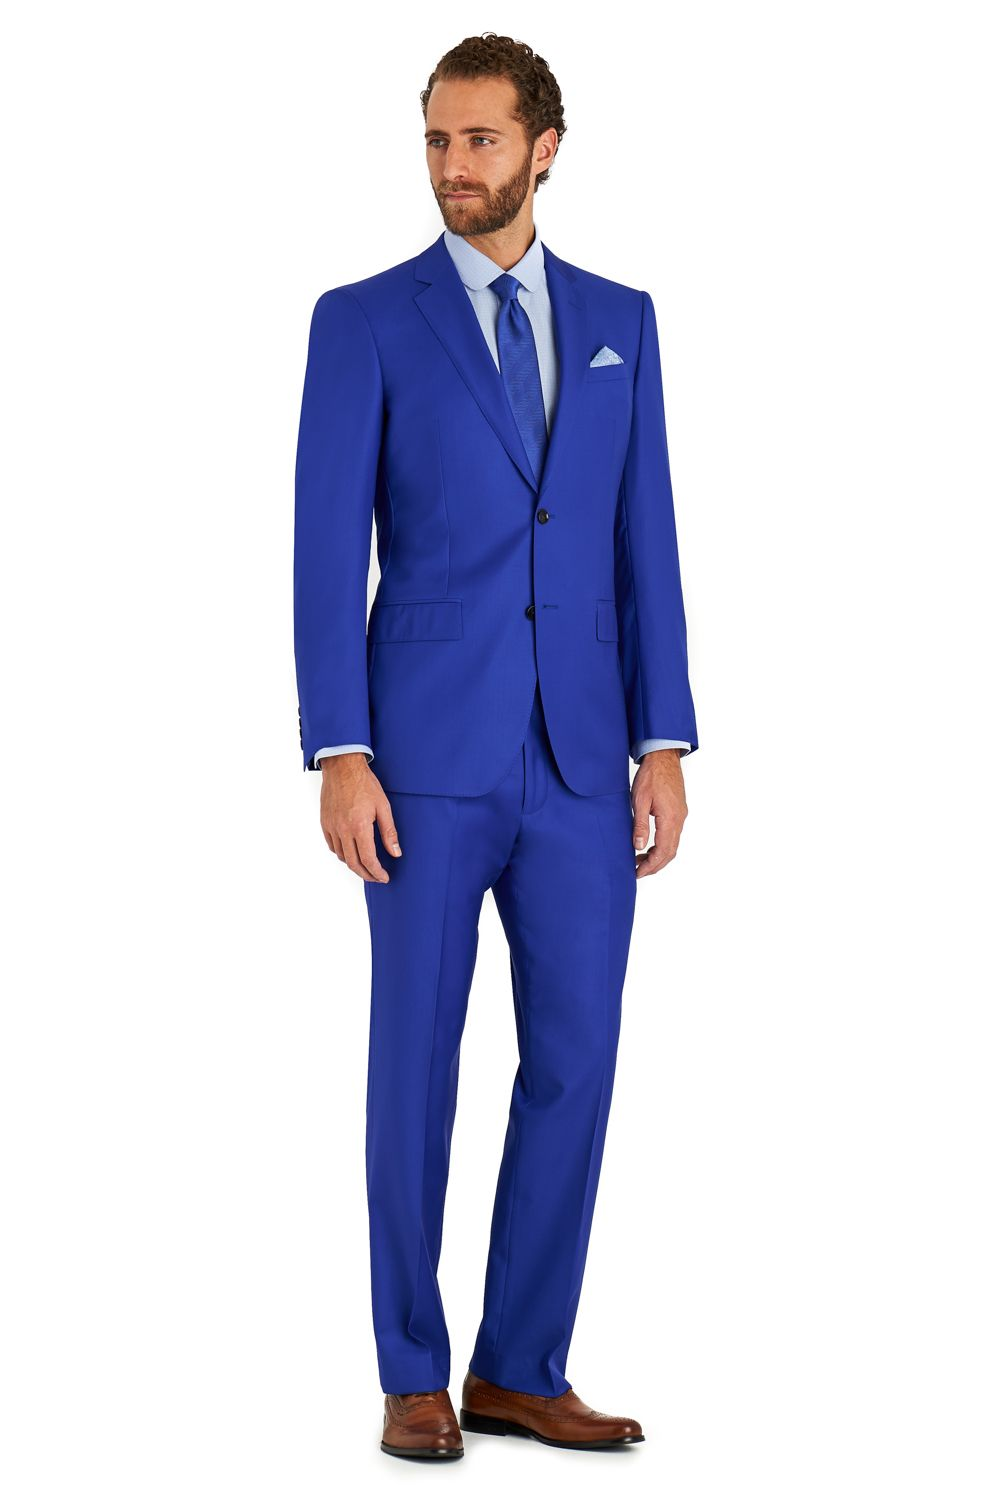 moss bright blue tailored fit . | wedding suit | Pinterest ...